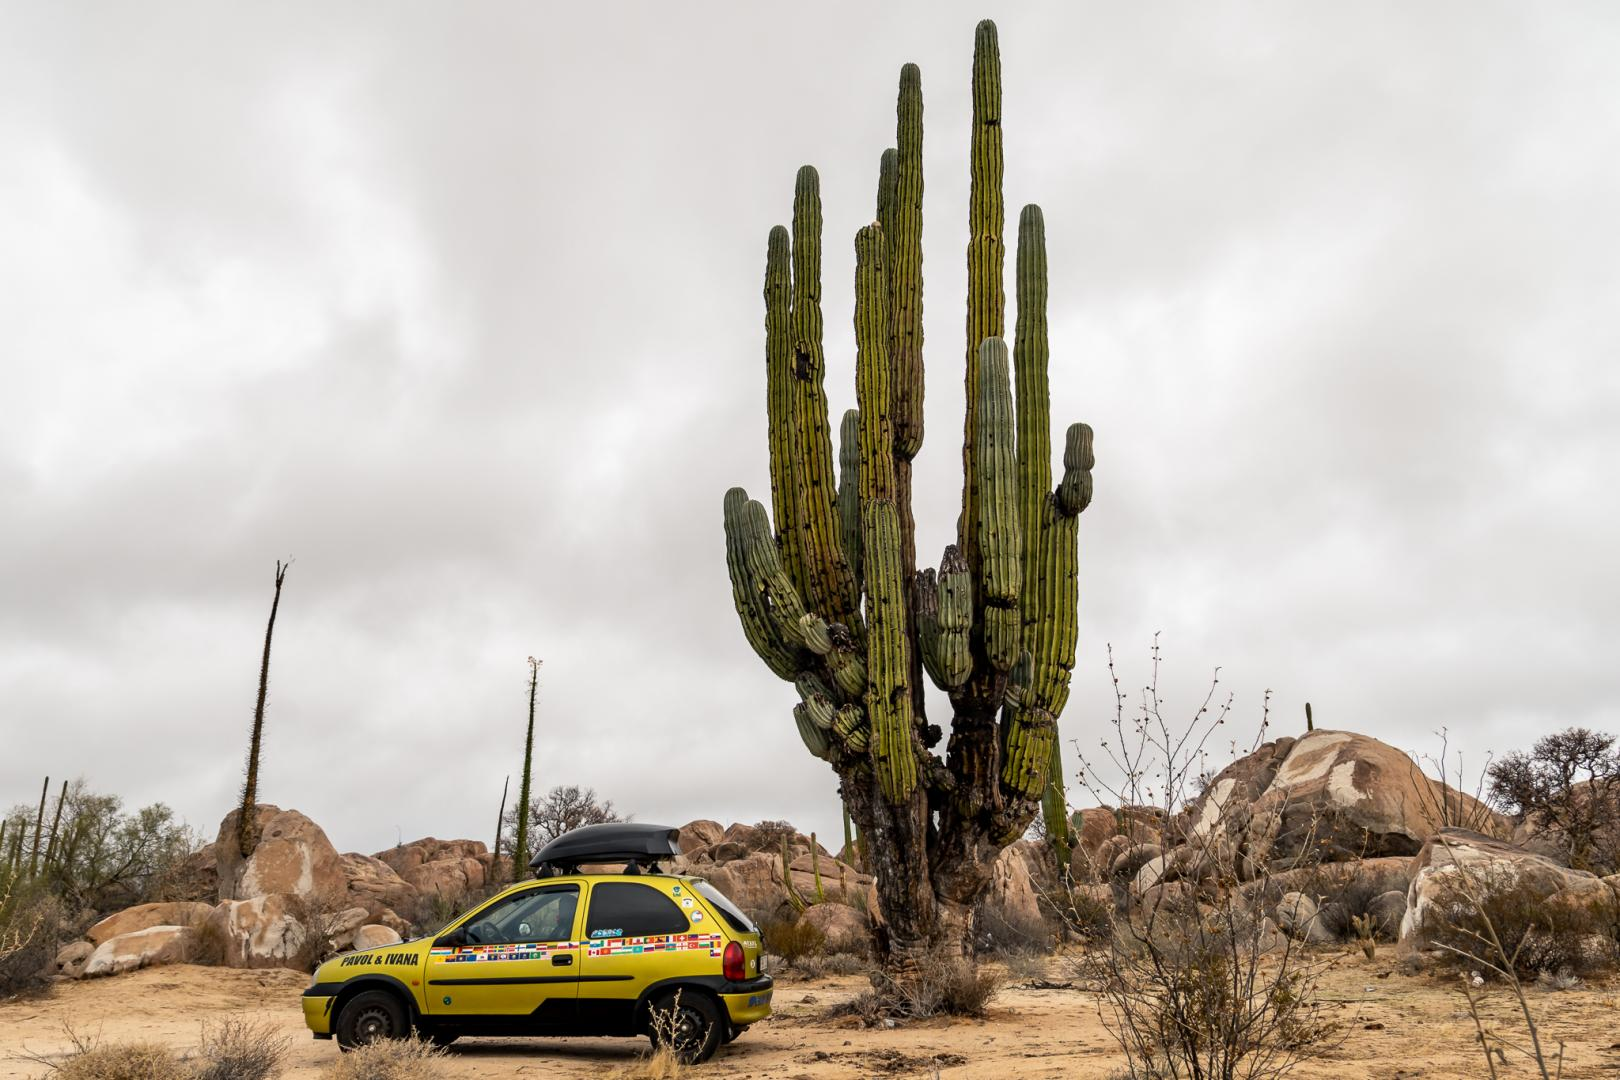 Mexico - Giant cactuses (1)